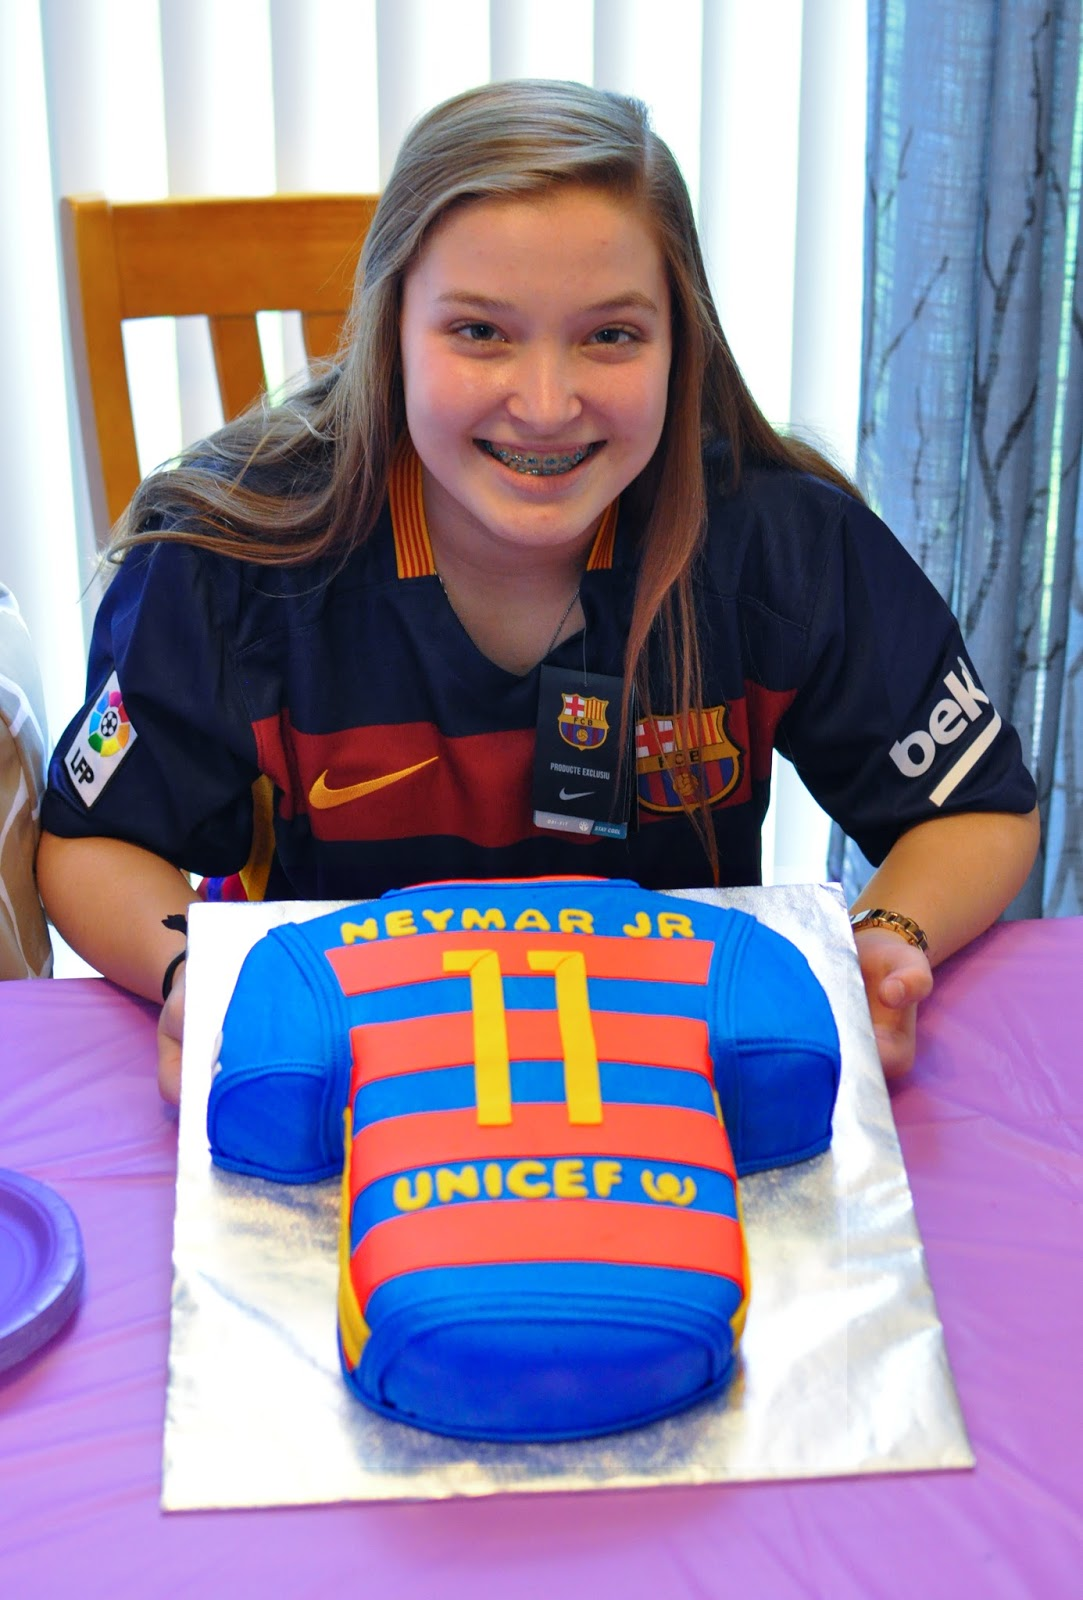 The Bake More Neymar Jr Jersey Cake